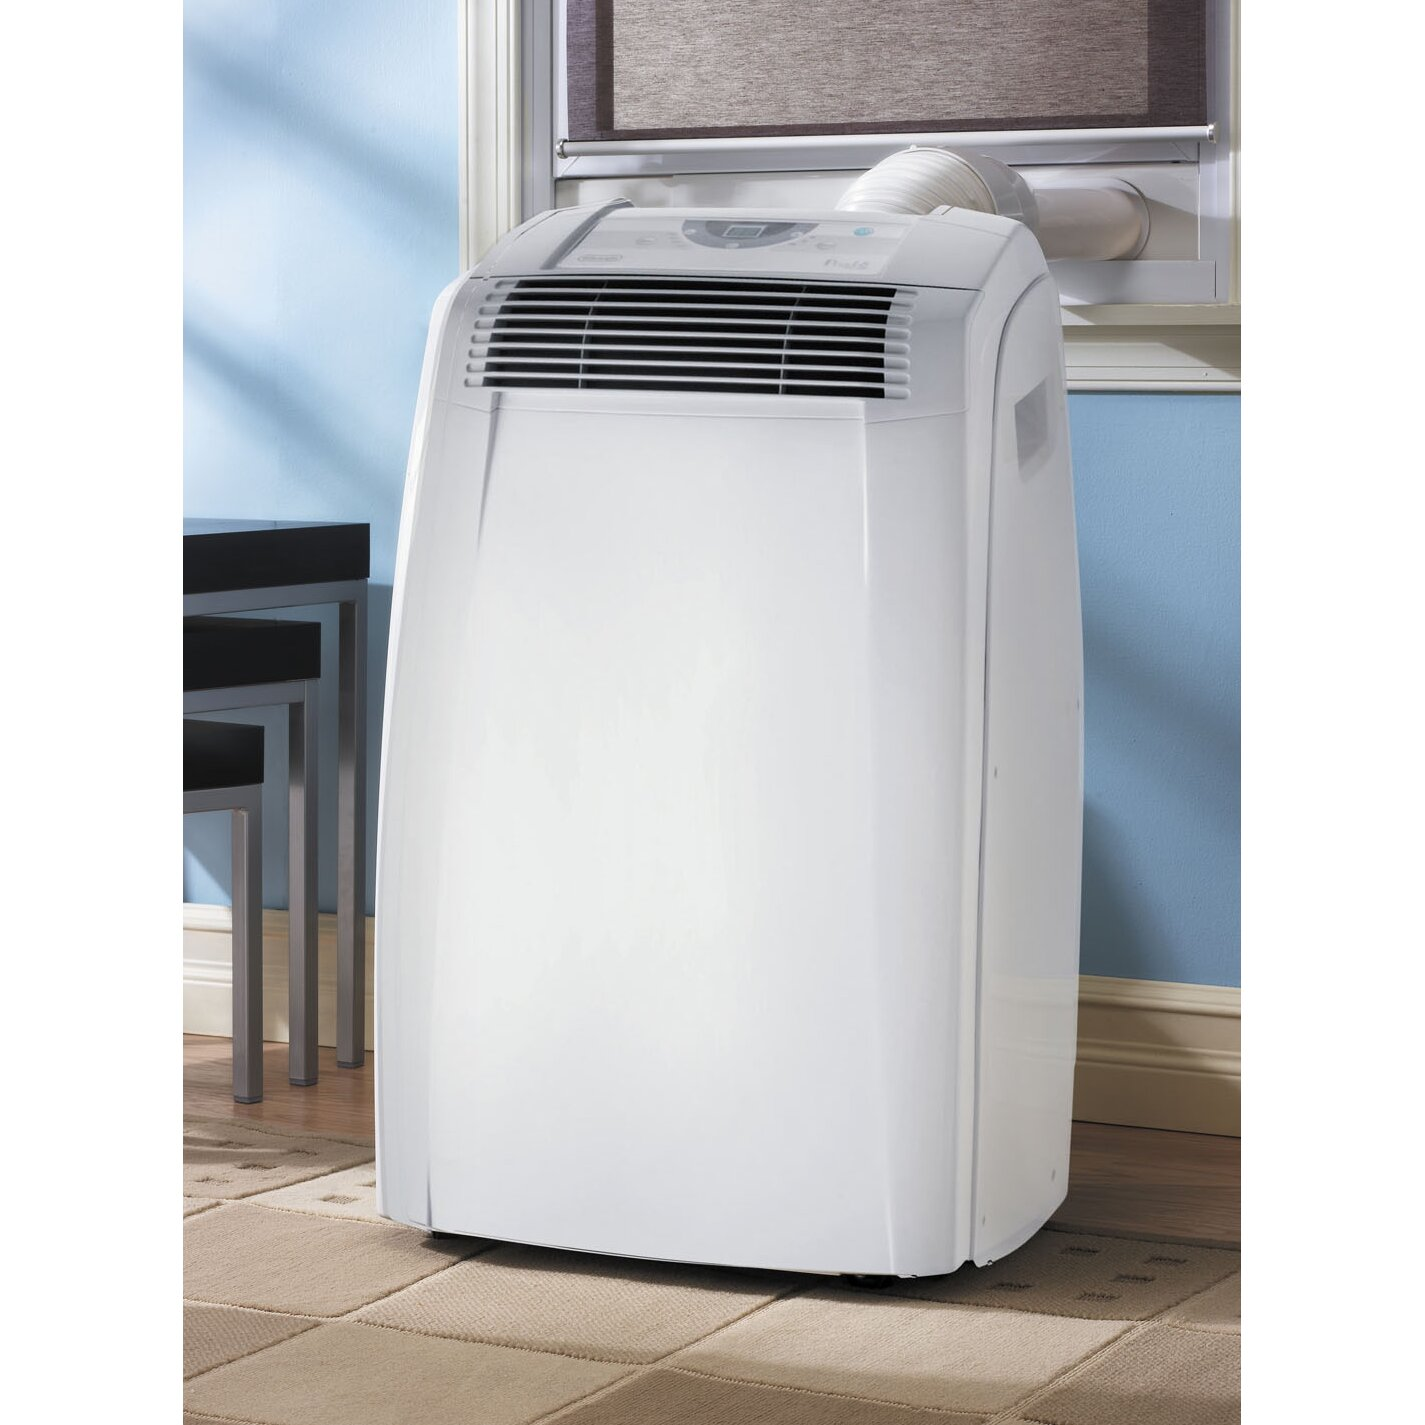 Series 12 000 BTU Portable Air Conditioner with Remote by DeLonghi #436888